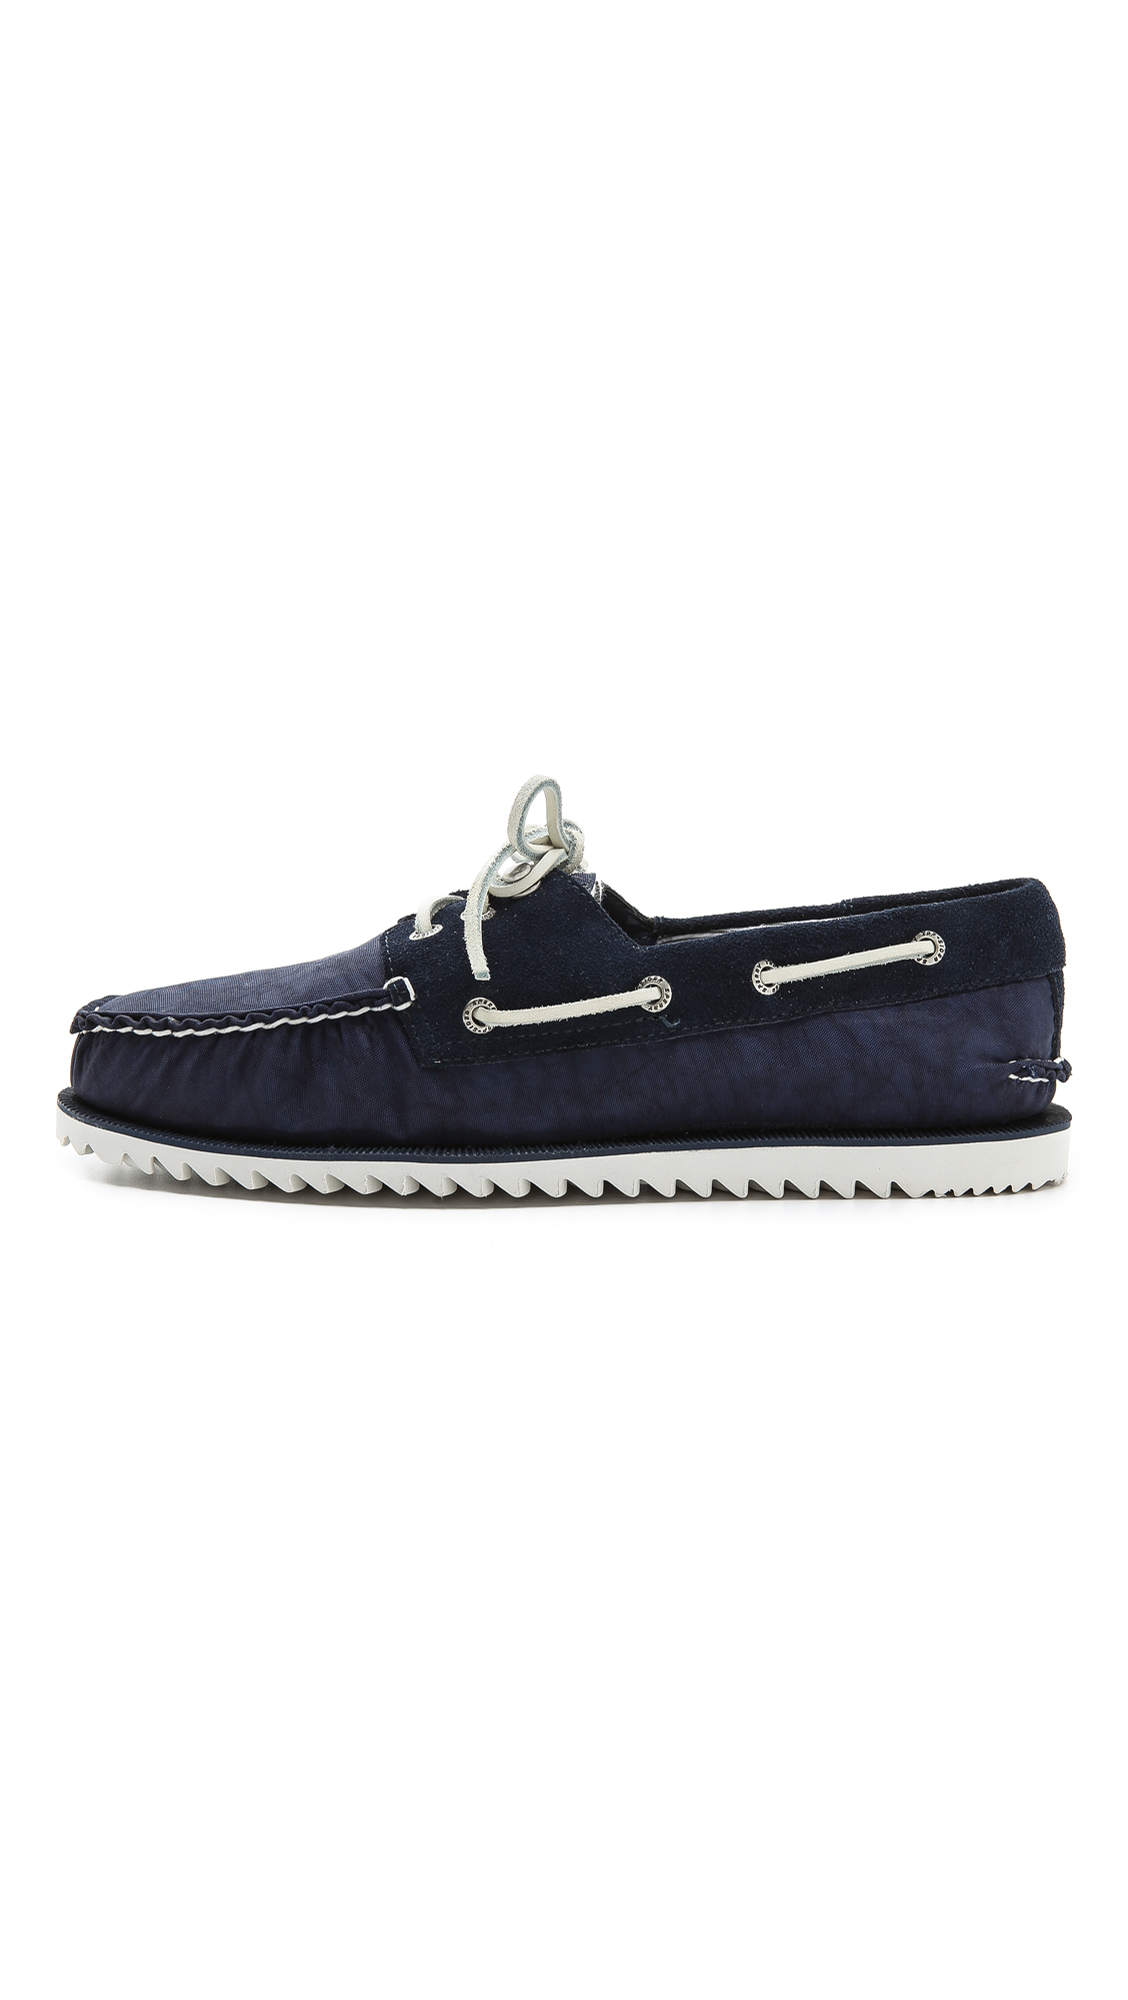 Sperry top sider razorfish boat shoes in blue for men lyst for Best boat shoes for fishing